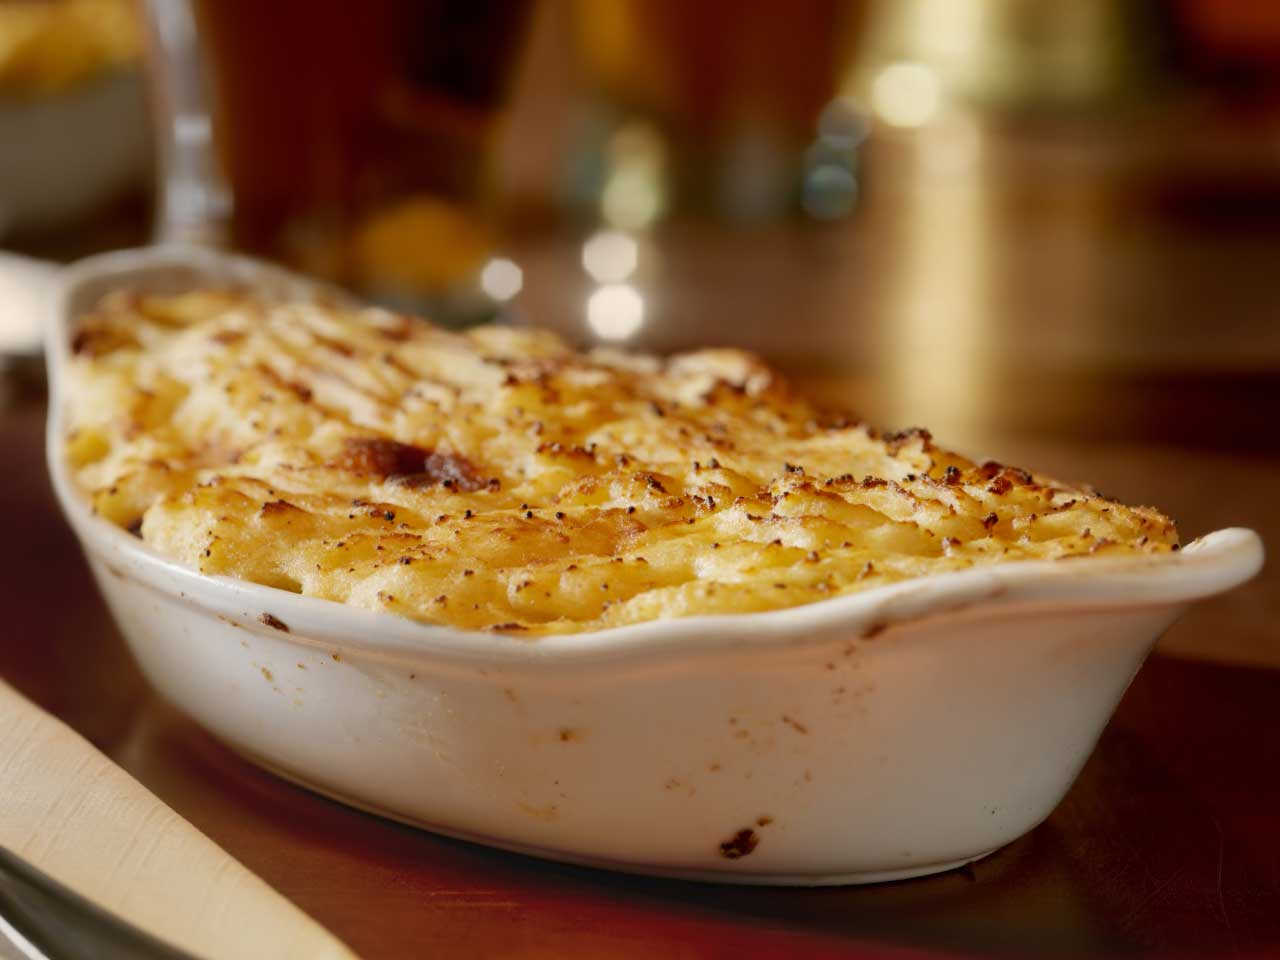 This spicy parsnip mash makes a delicious topping for shepherd's pie